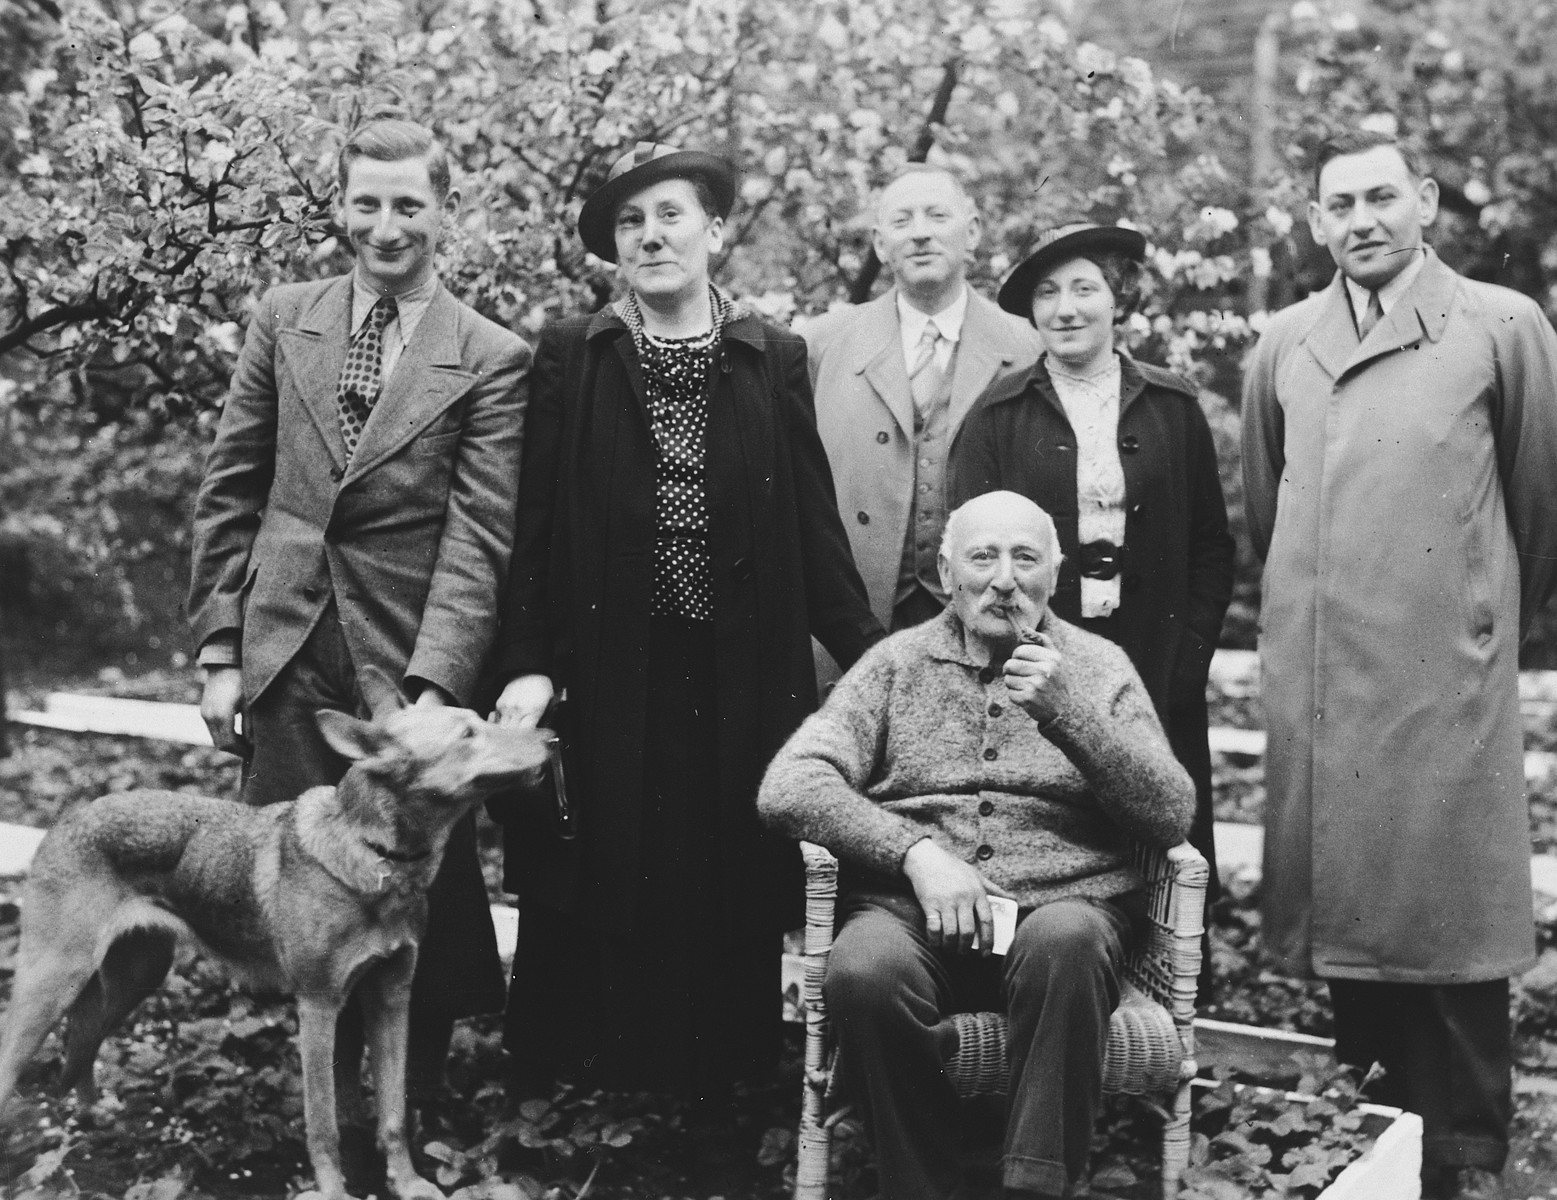 A German-Jewish family poses outdoors for a family portrait with their dog.  Standing from left to right are Ernst Meyer, Elfriede Meyer, Berthold Meyer, Ilse Meyer Marcus and Kurt Marcus.